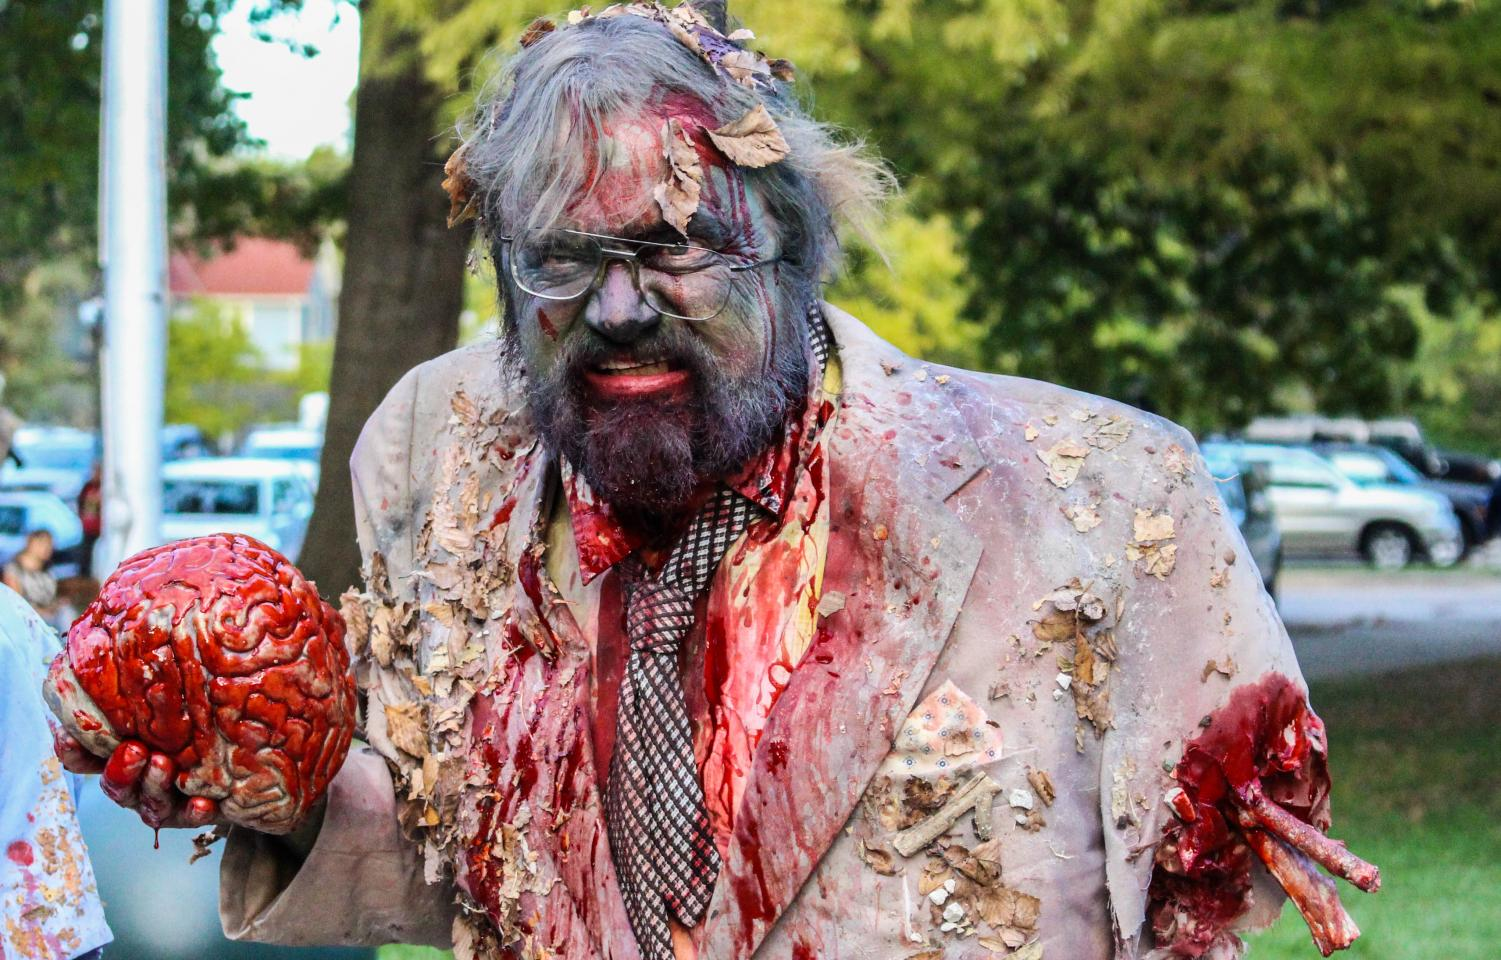 David+Edwards+growls+at+the+Zombie+Walk+in+Lawrence%2C+Kansas+on+Oct.+18.+This+was+the+12th+annual+Zombie+Walk+in+Lawrence.